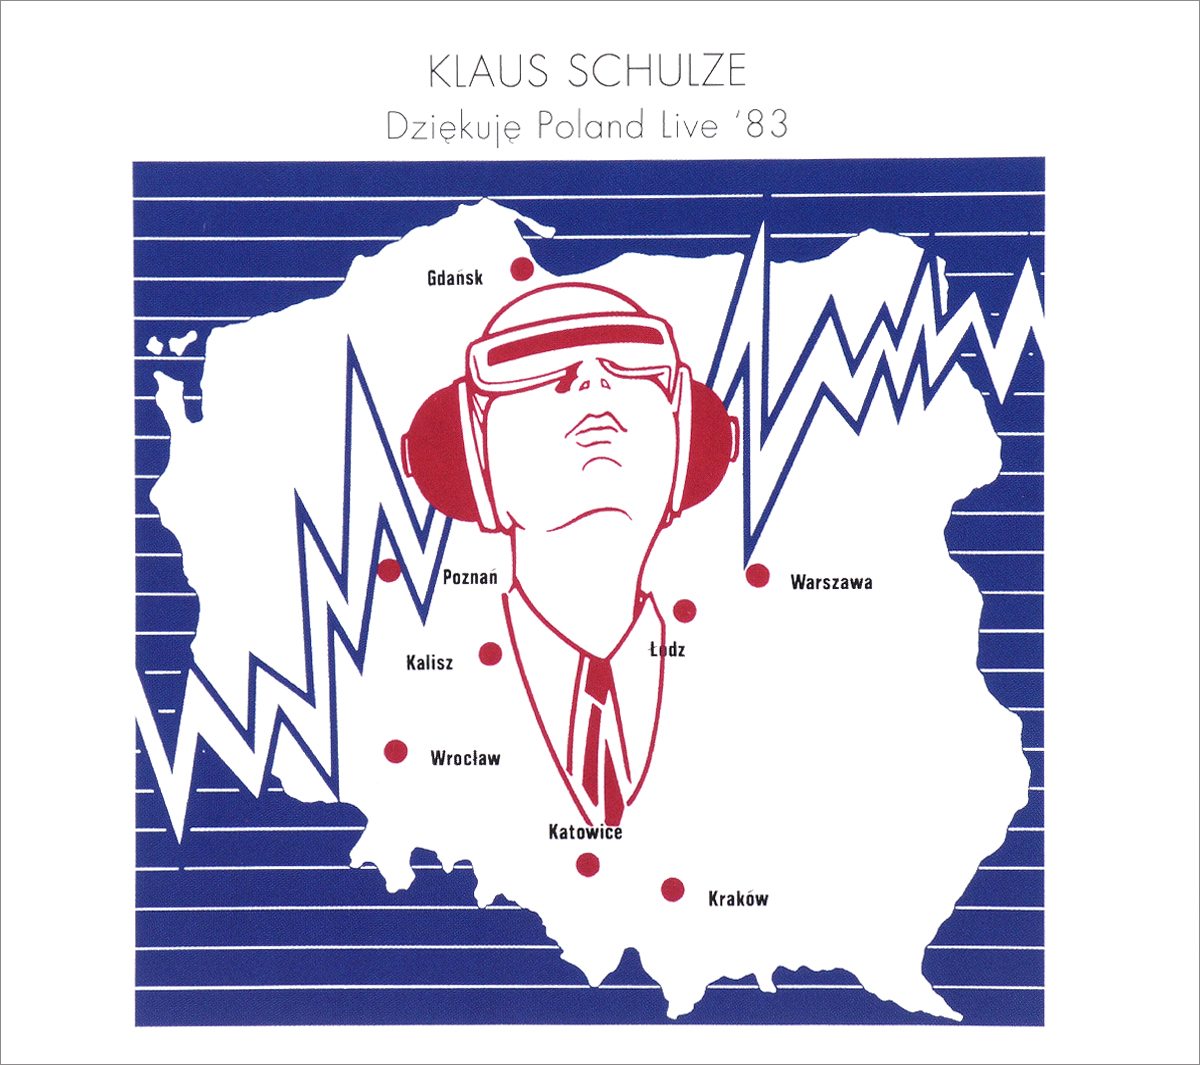 Клаус Шульце Klaus Schulze. Dziekuje Poland Live 83 (2 CD) клаус шульце klaus schulze la vie electronique 11 3 cd